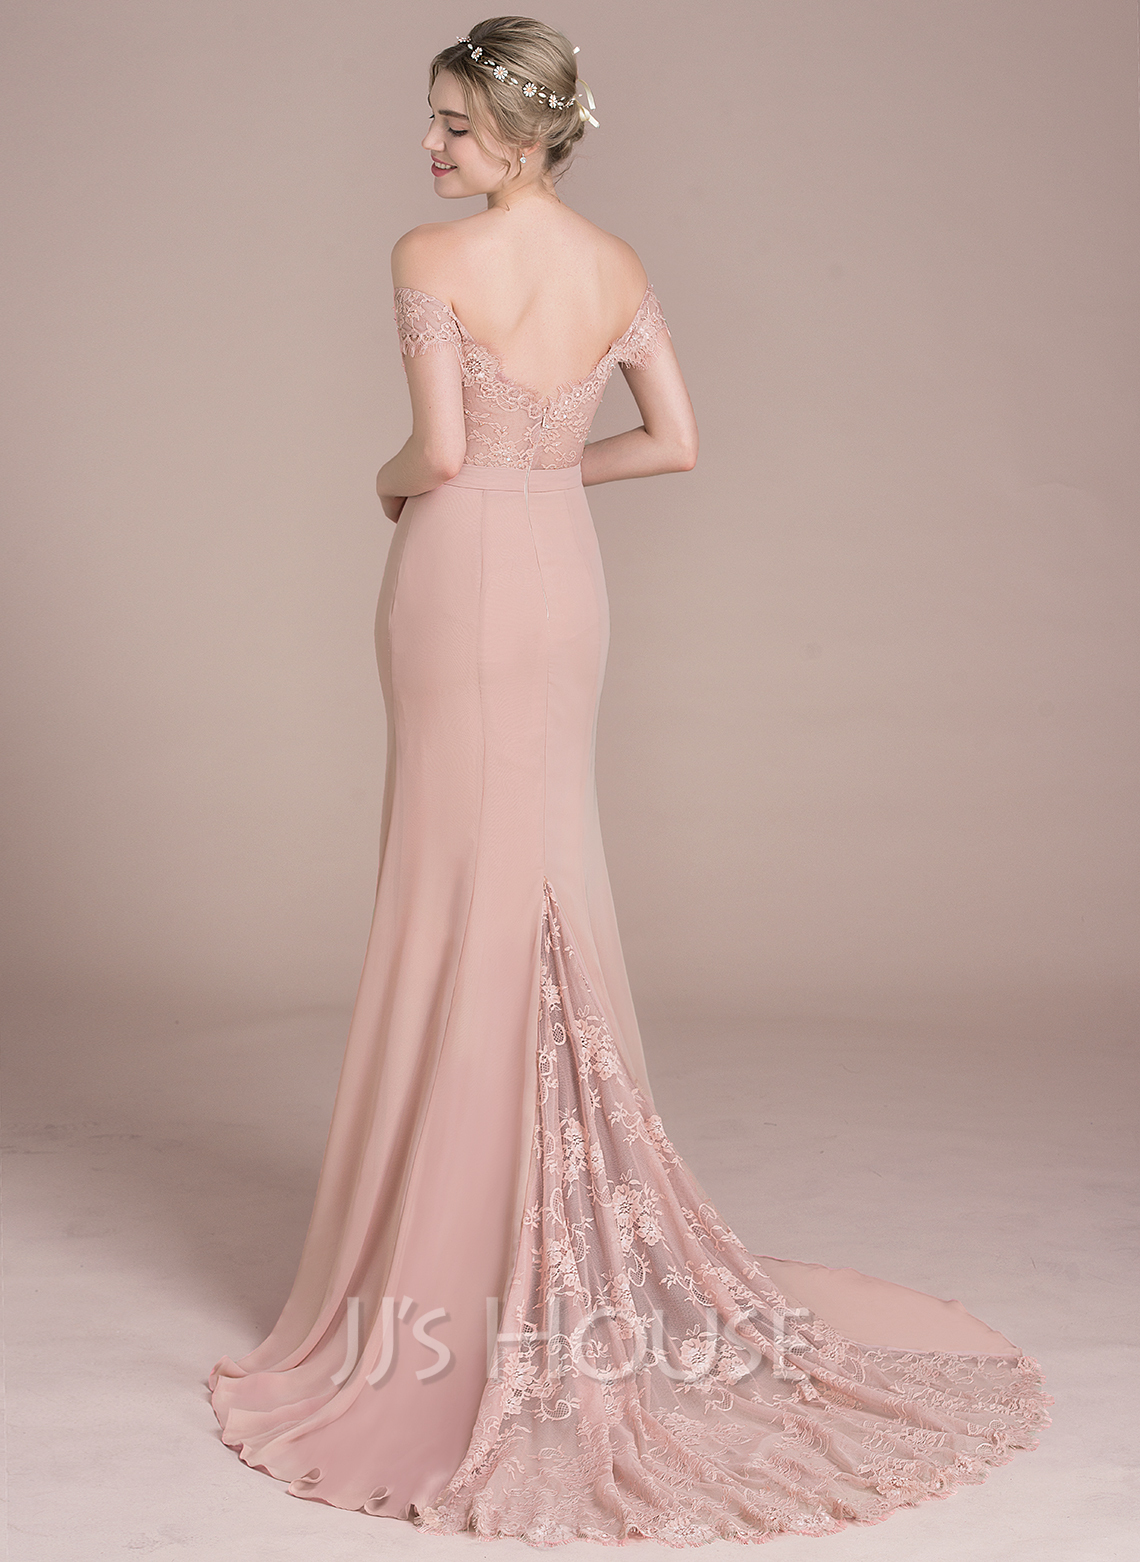 b7b63c374bc Trumpet Mermaid Off-the-Shoulder Court Train Chiffon Lace Bridesmaid Dress  With Beading. Loading zoom